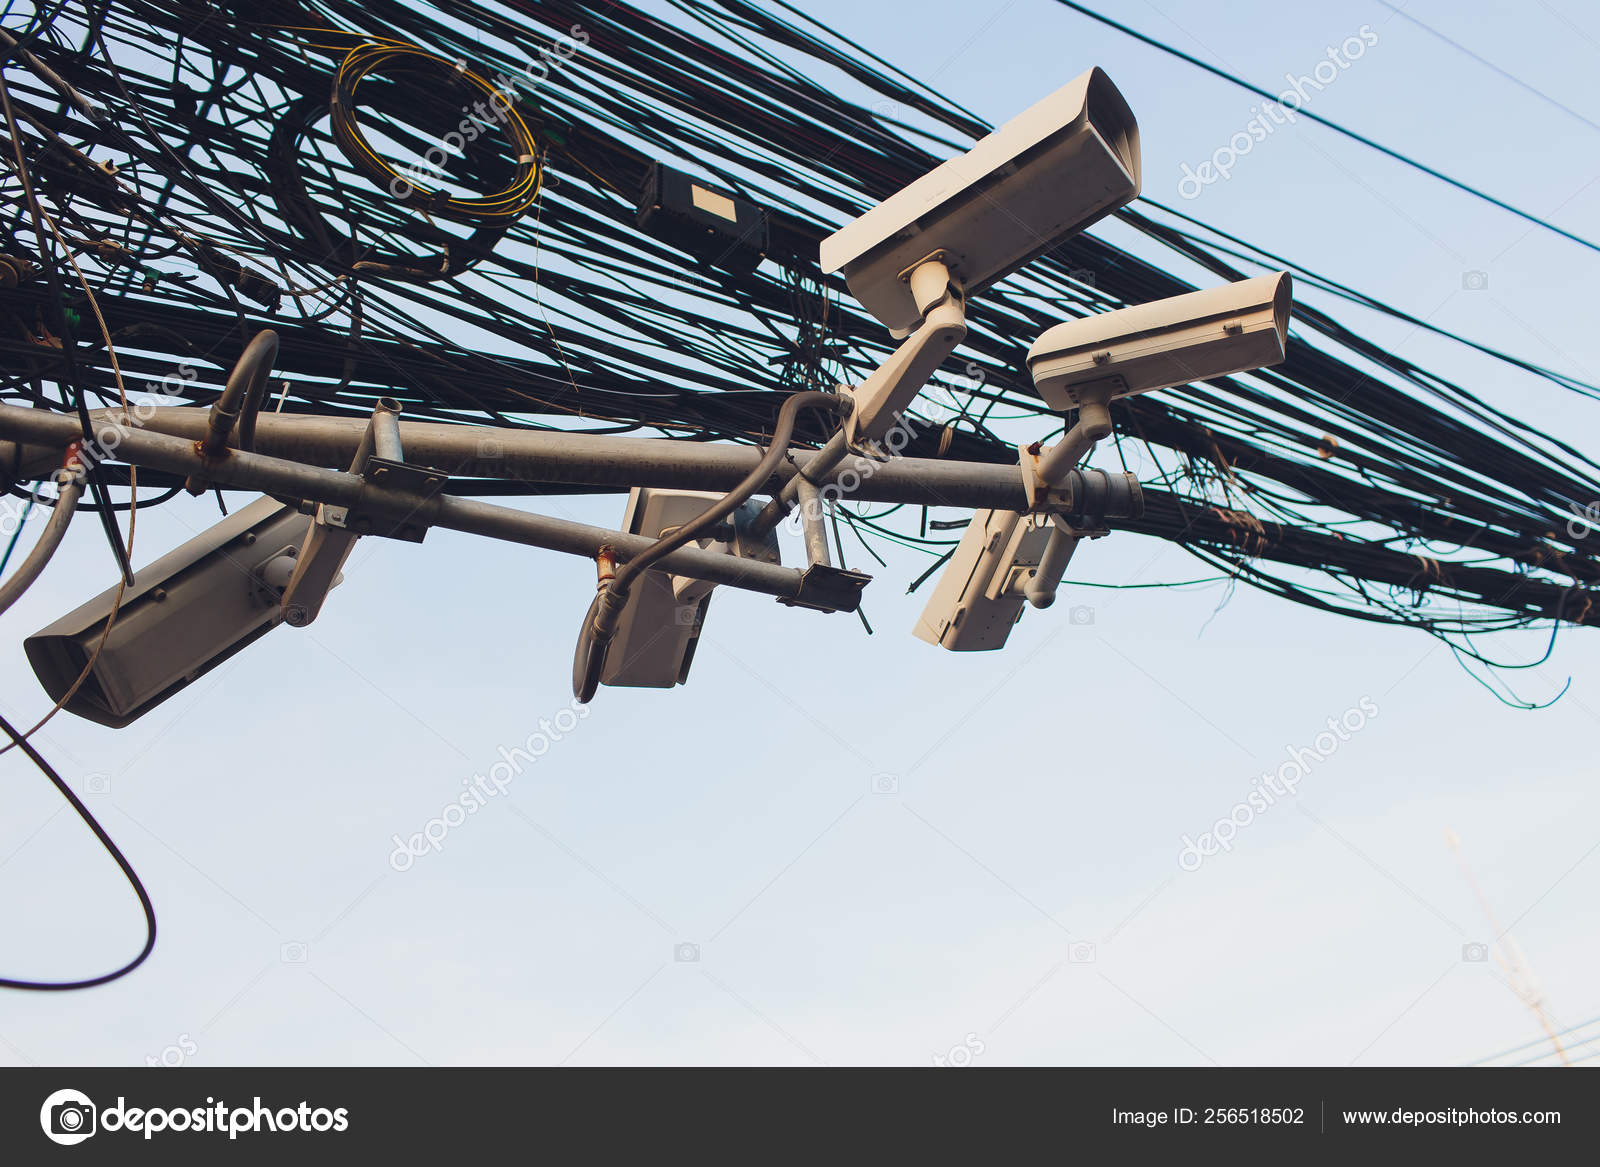 hight resolution of crazy messy chaos wires cables on electric poles photo by